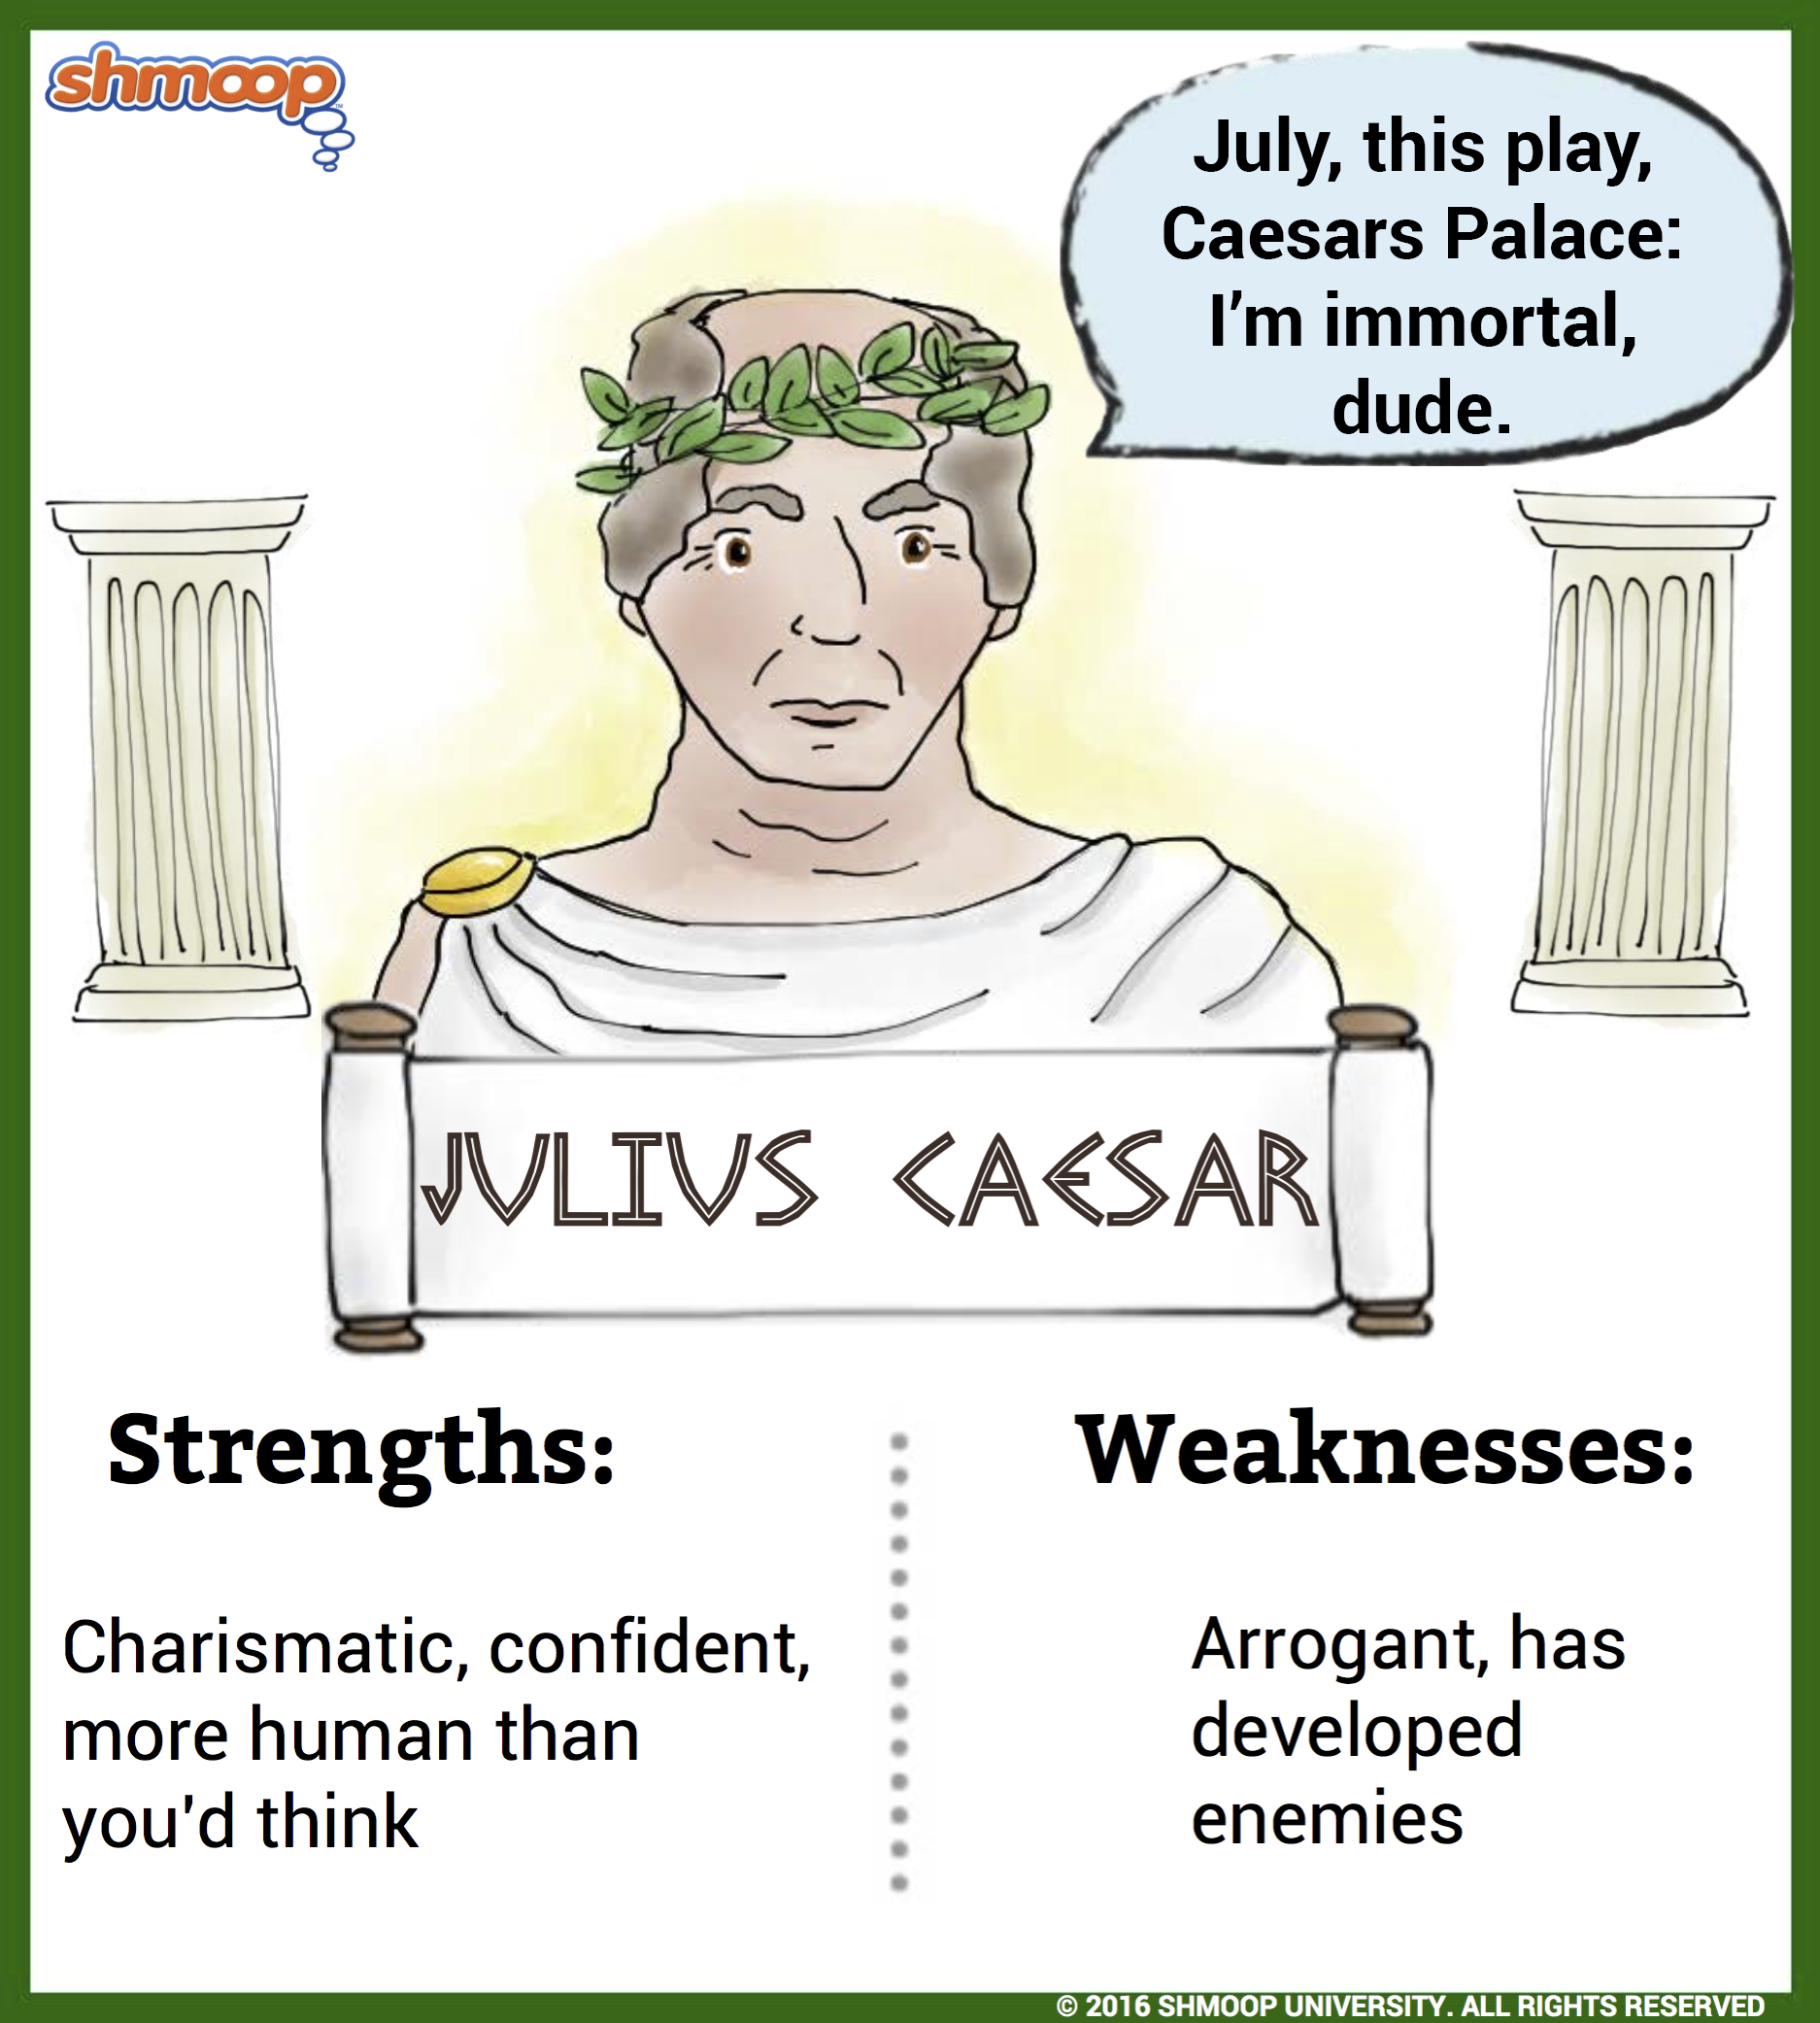 analysis william shakespeare s julius caesar A teacher's guide to the signet classic edition of william shakespeare's julius caesar.